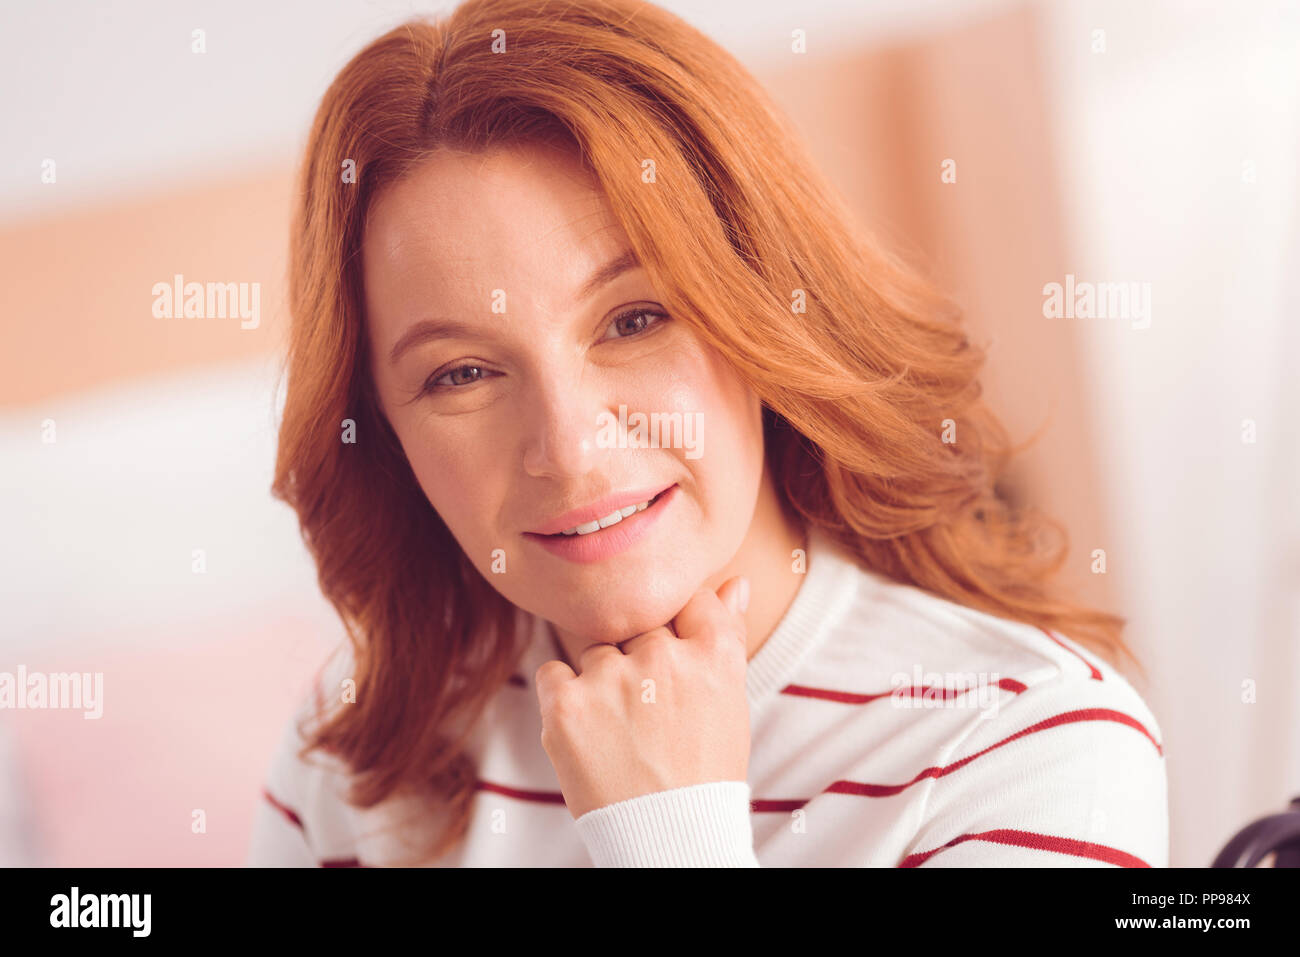 Portrait of a positive woman expressing happiness - Stock Image